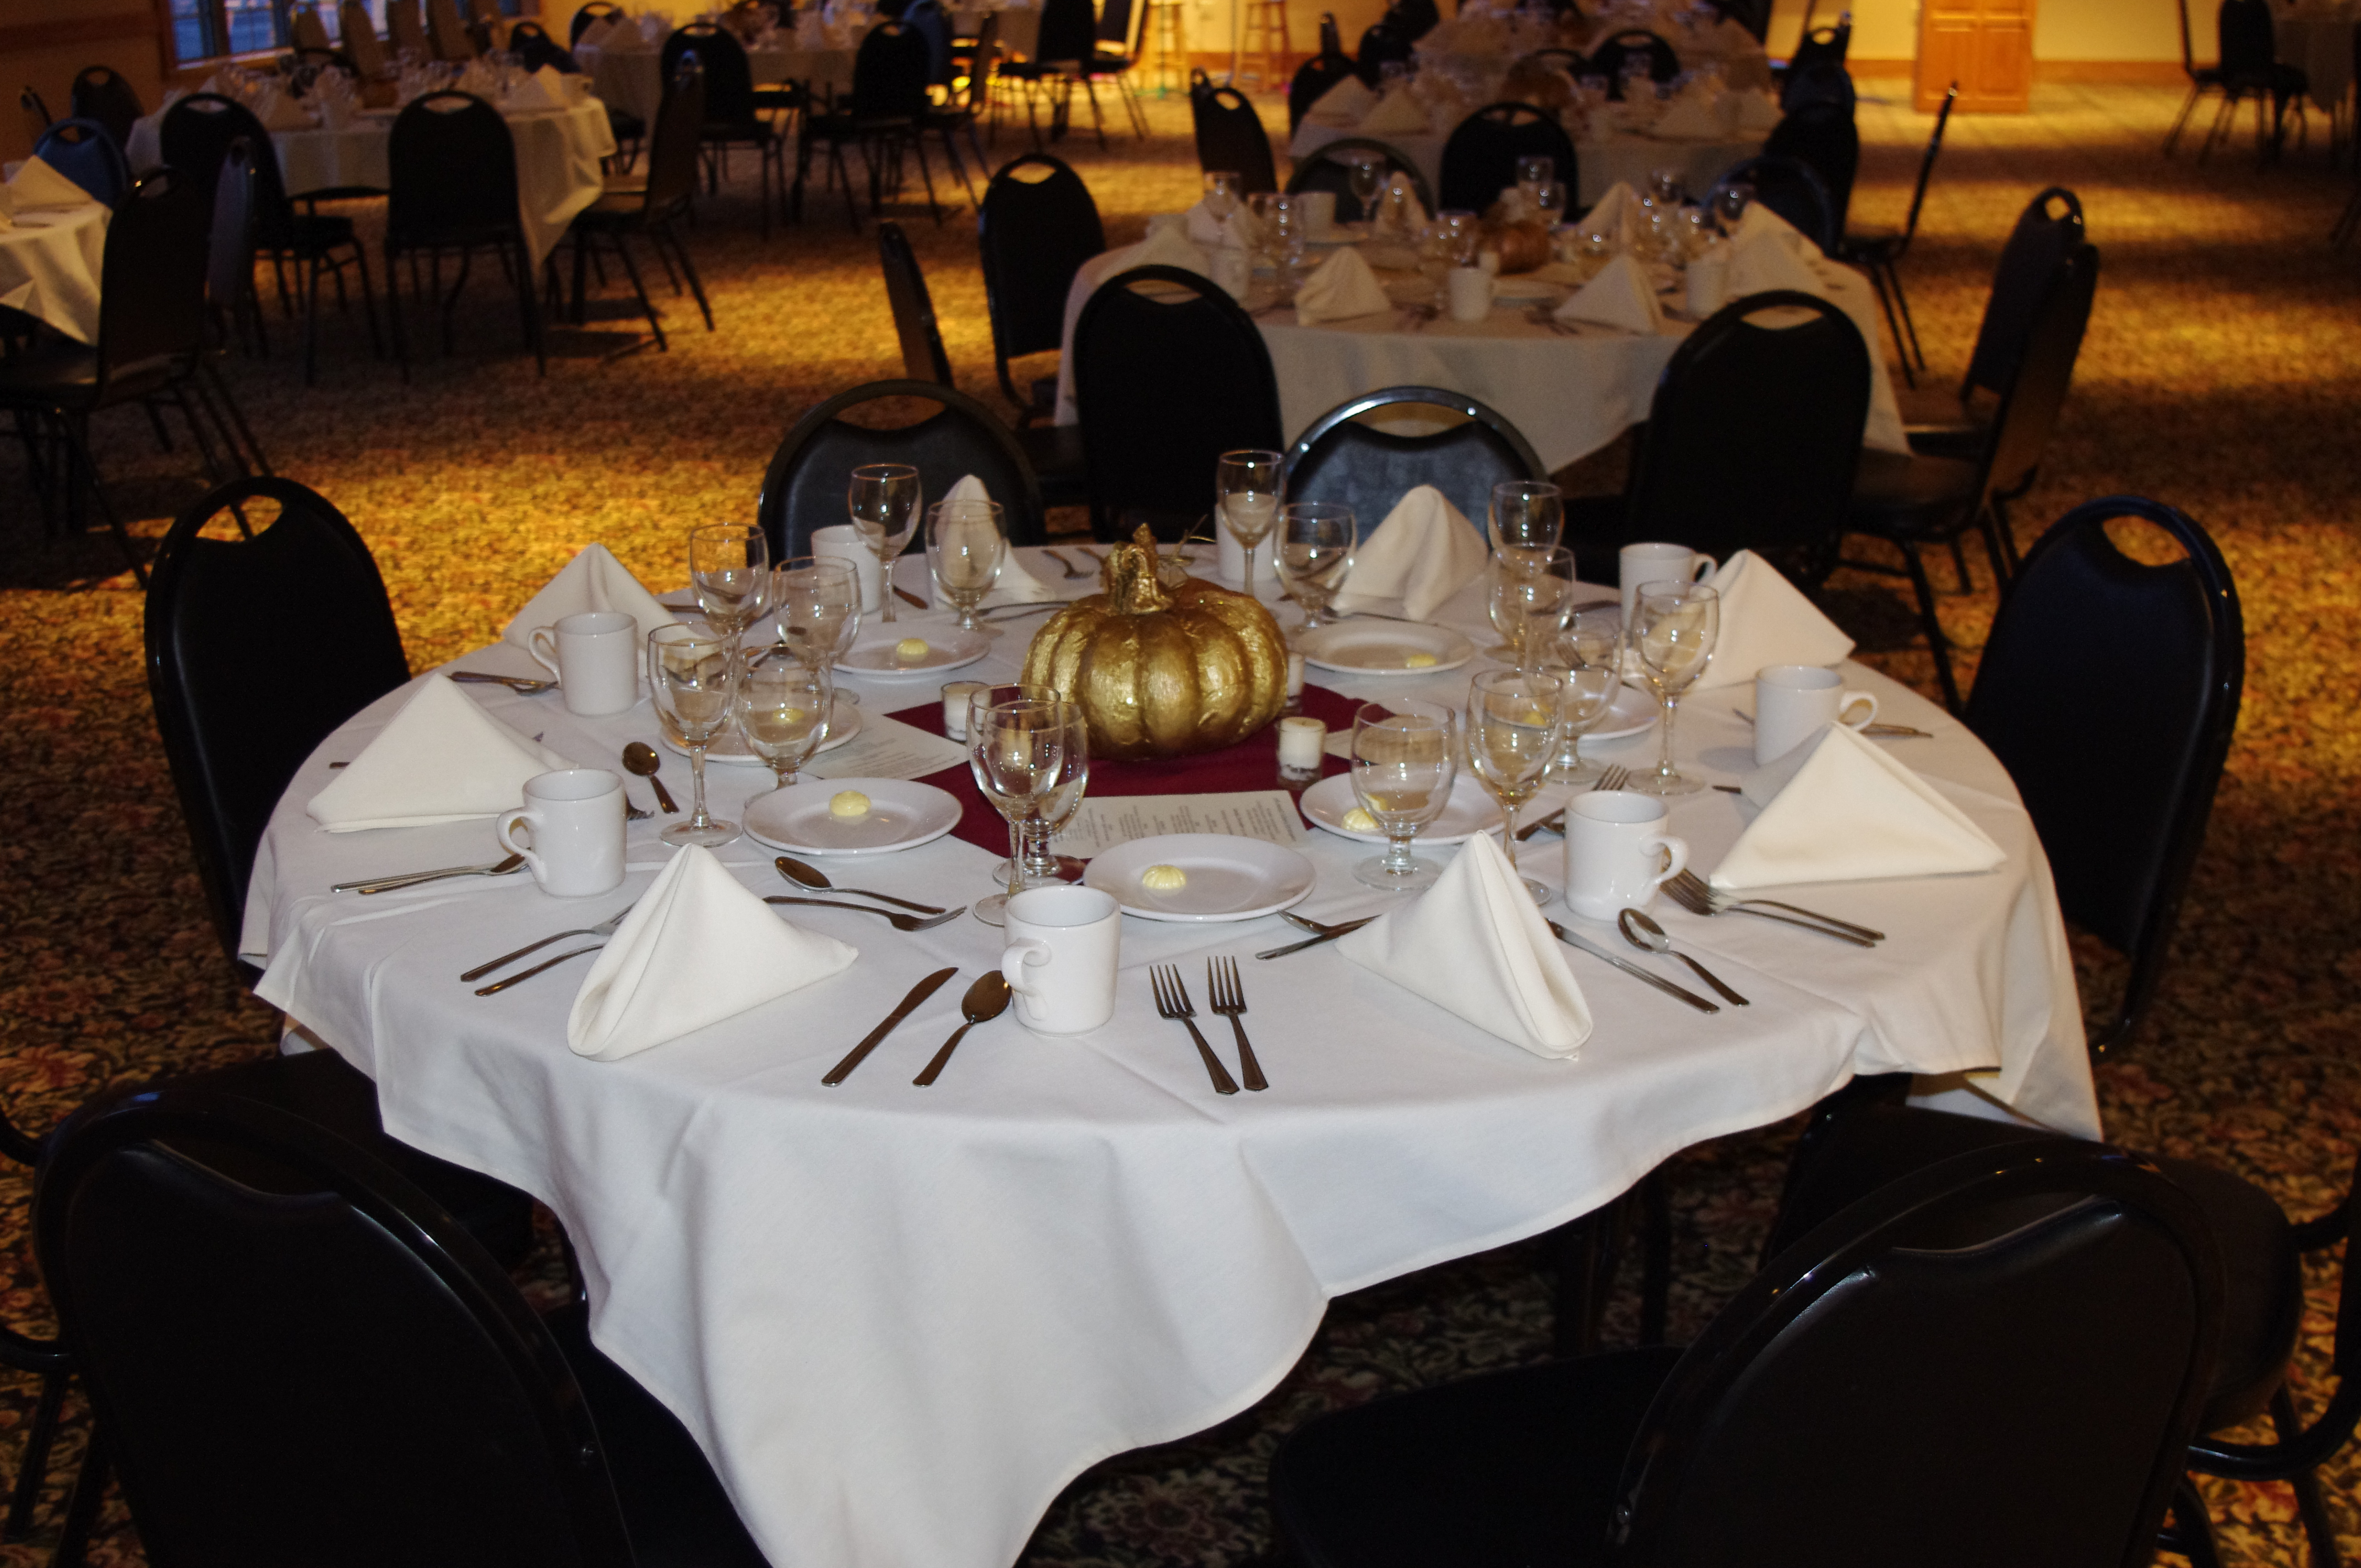 Fruechte Room - round table with fall decorations